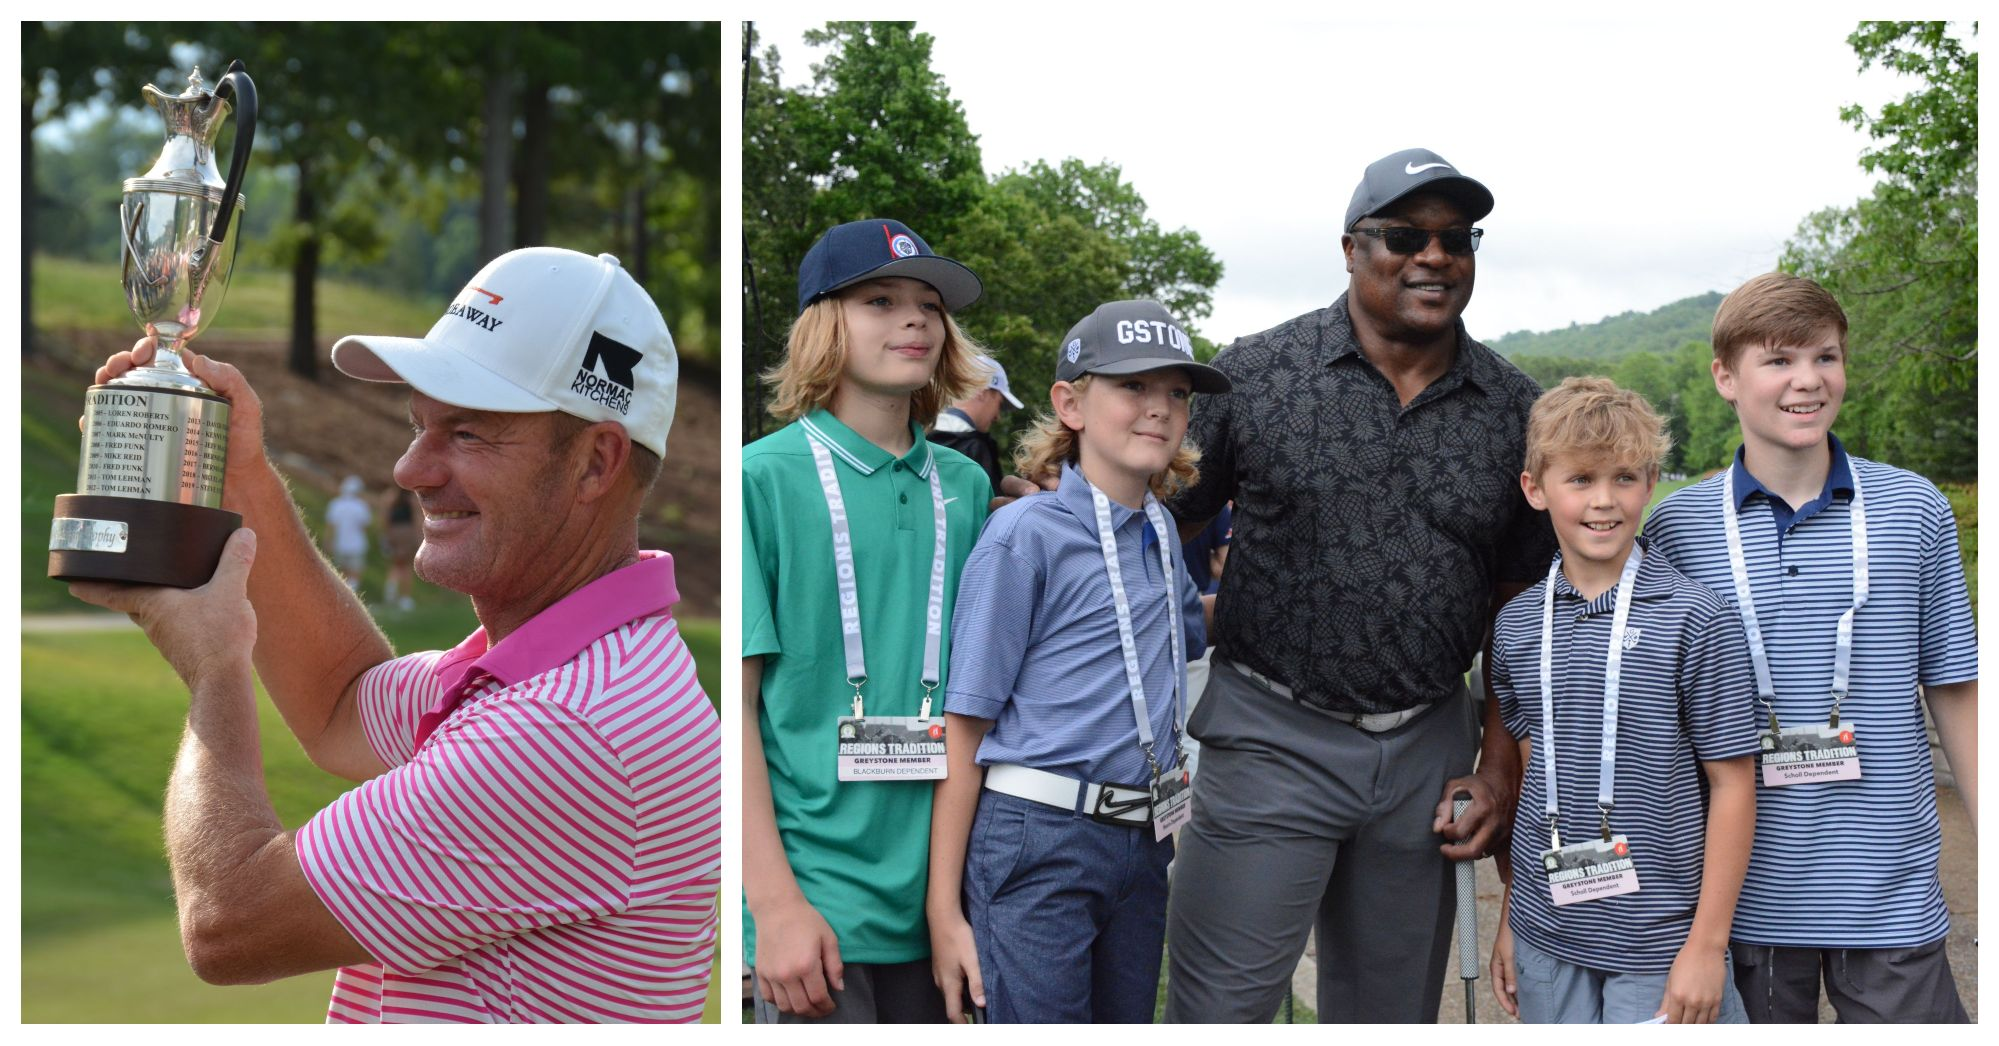 Collage image with Alex Čejka holding the Regions Tournament trophy; Bo Jackson and children at GGCC